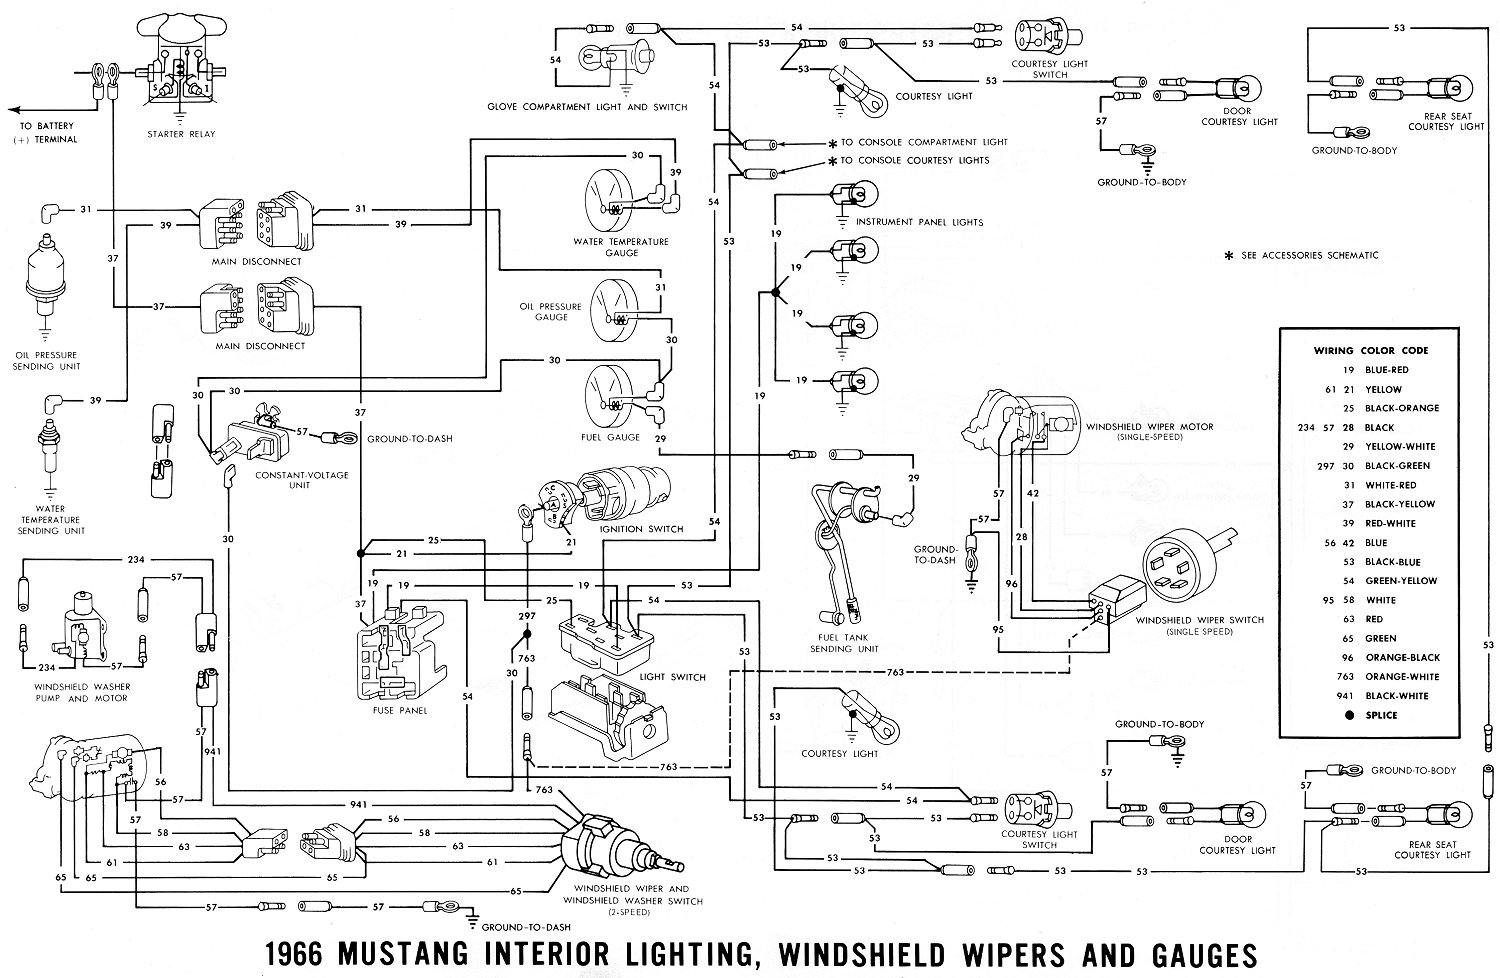 66inter1 1966 mustang wiring diagrams average joe restoration 1965 Mustang Restoration Guide at n-0.co